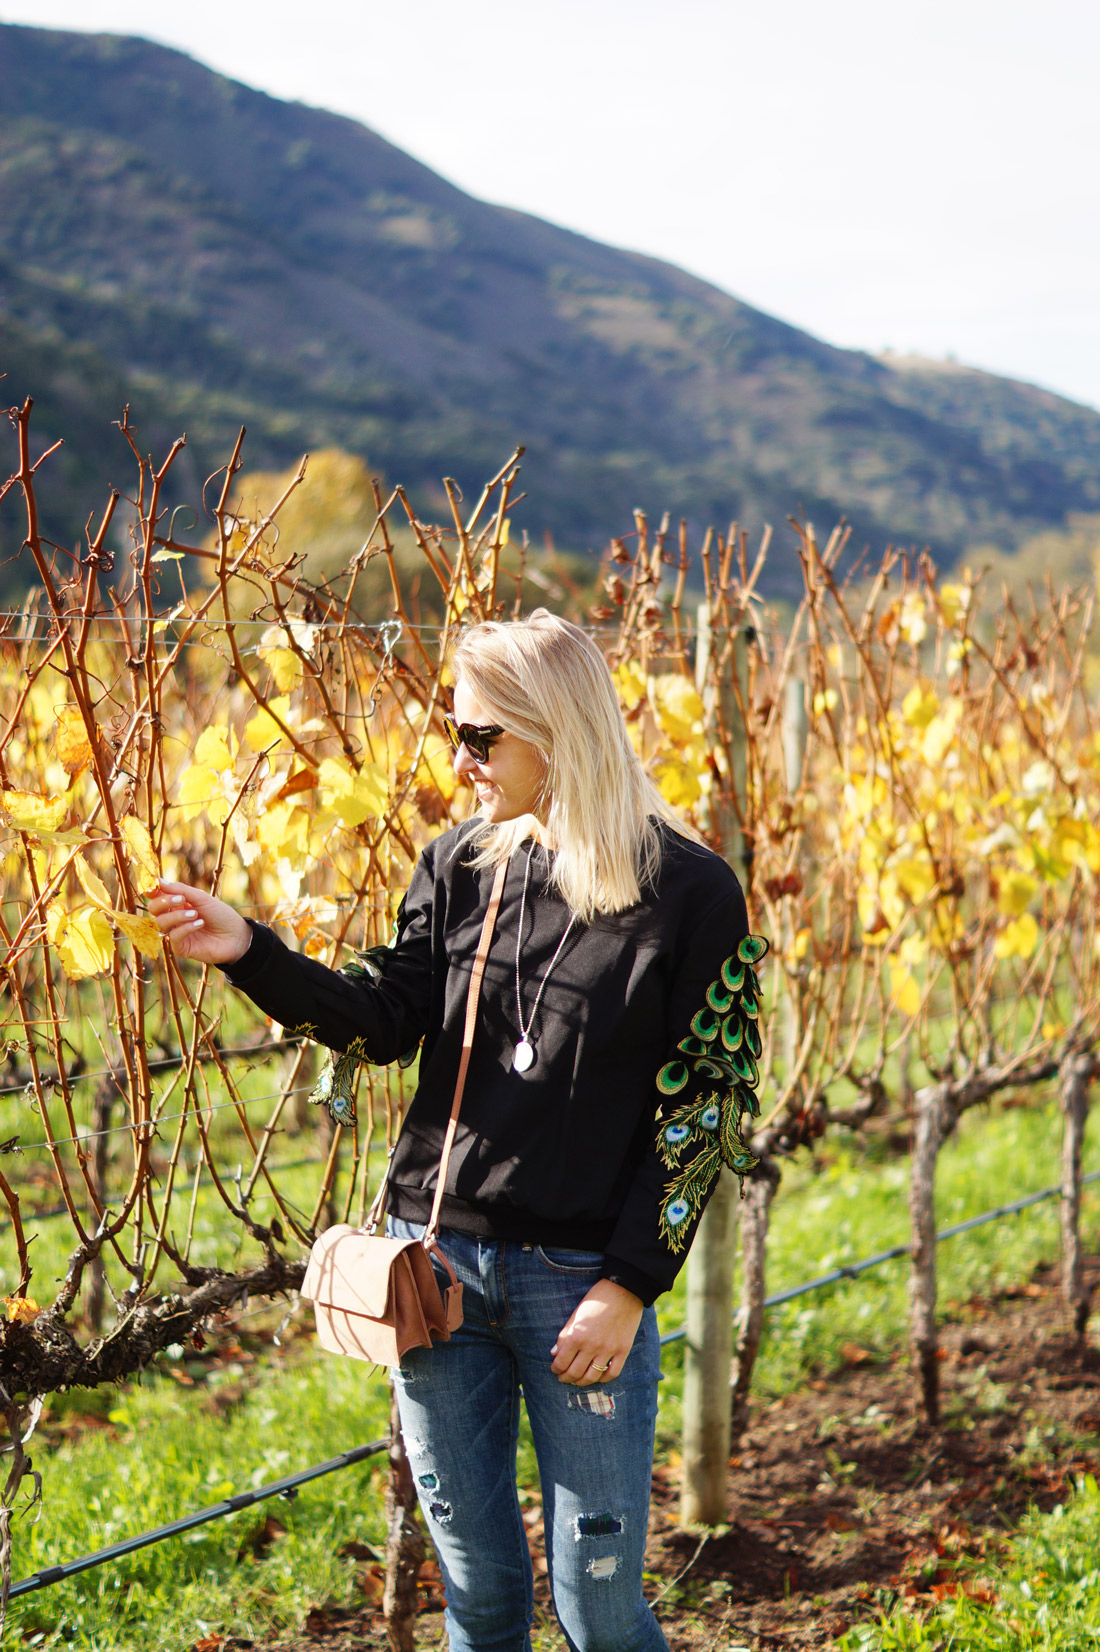 bag-at-you-travel-blog-what-to-wear-when-wine-tasting